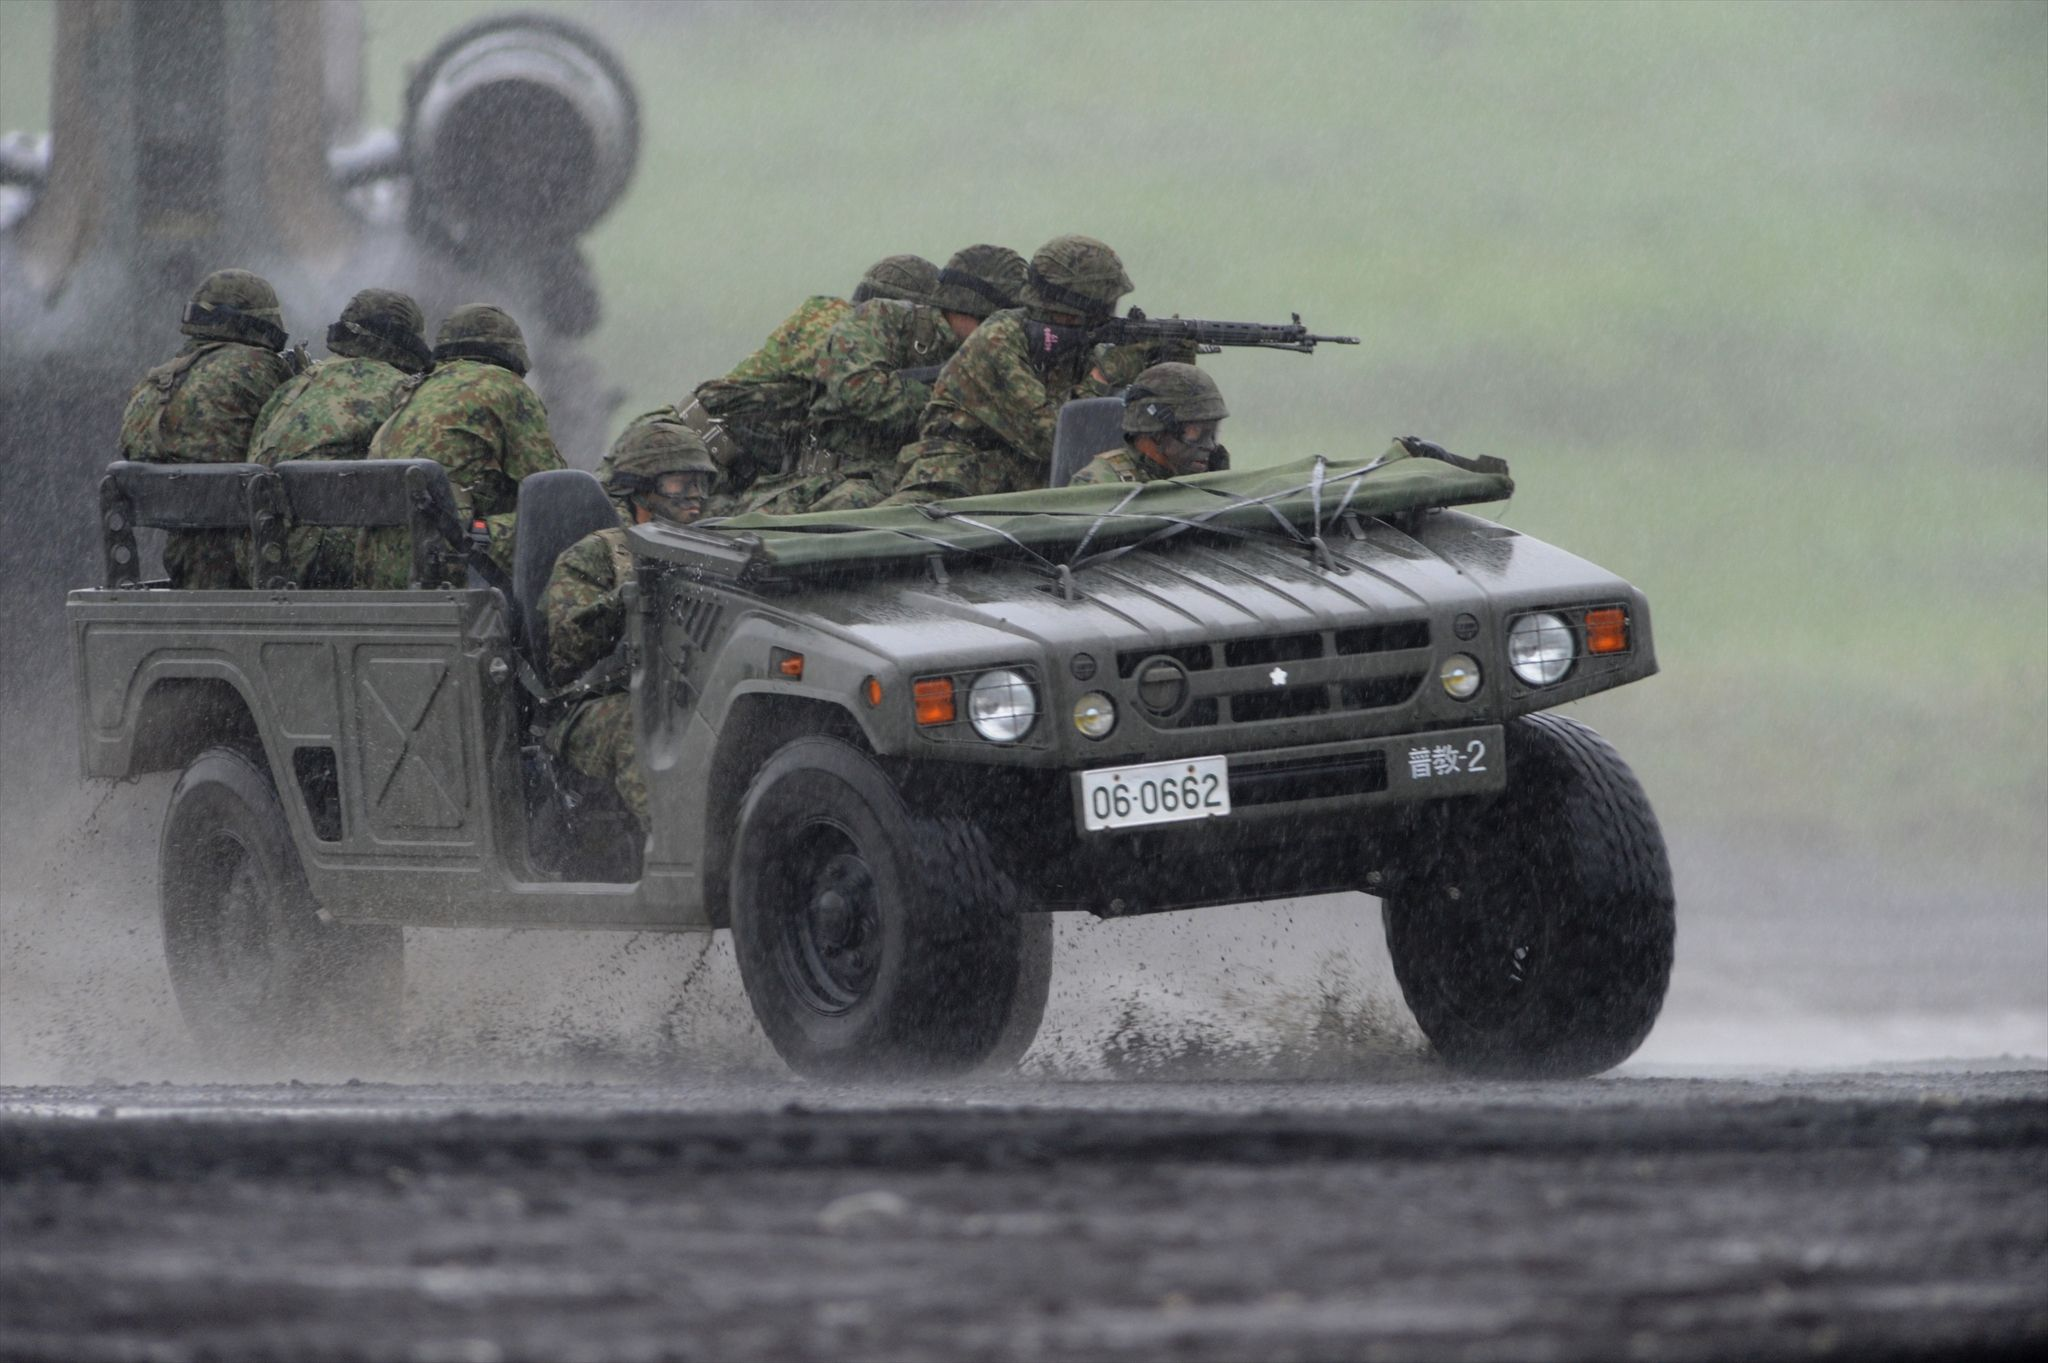 Japanese Toyota high mobility vehicle [2048 x 1363] | Military ...